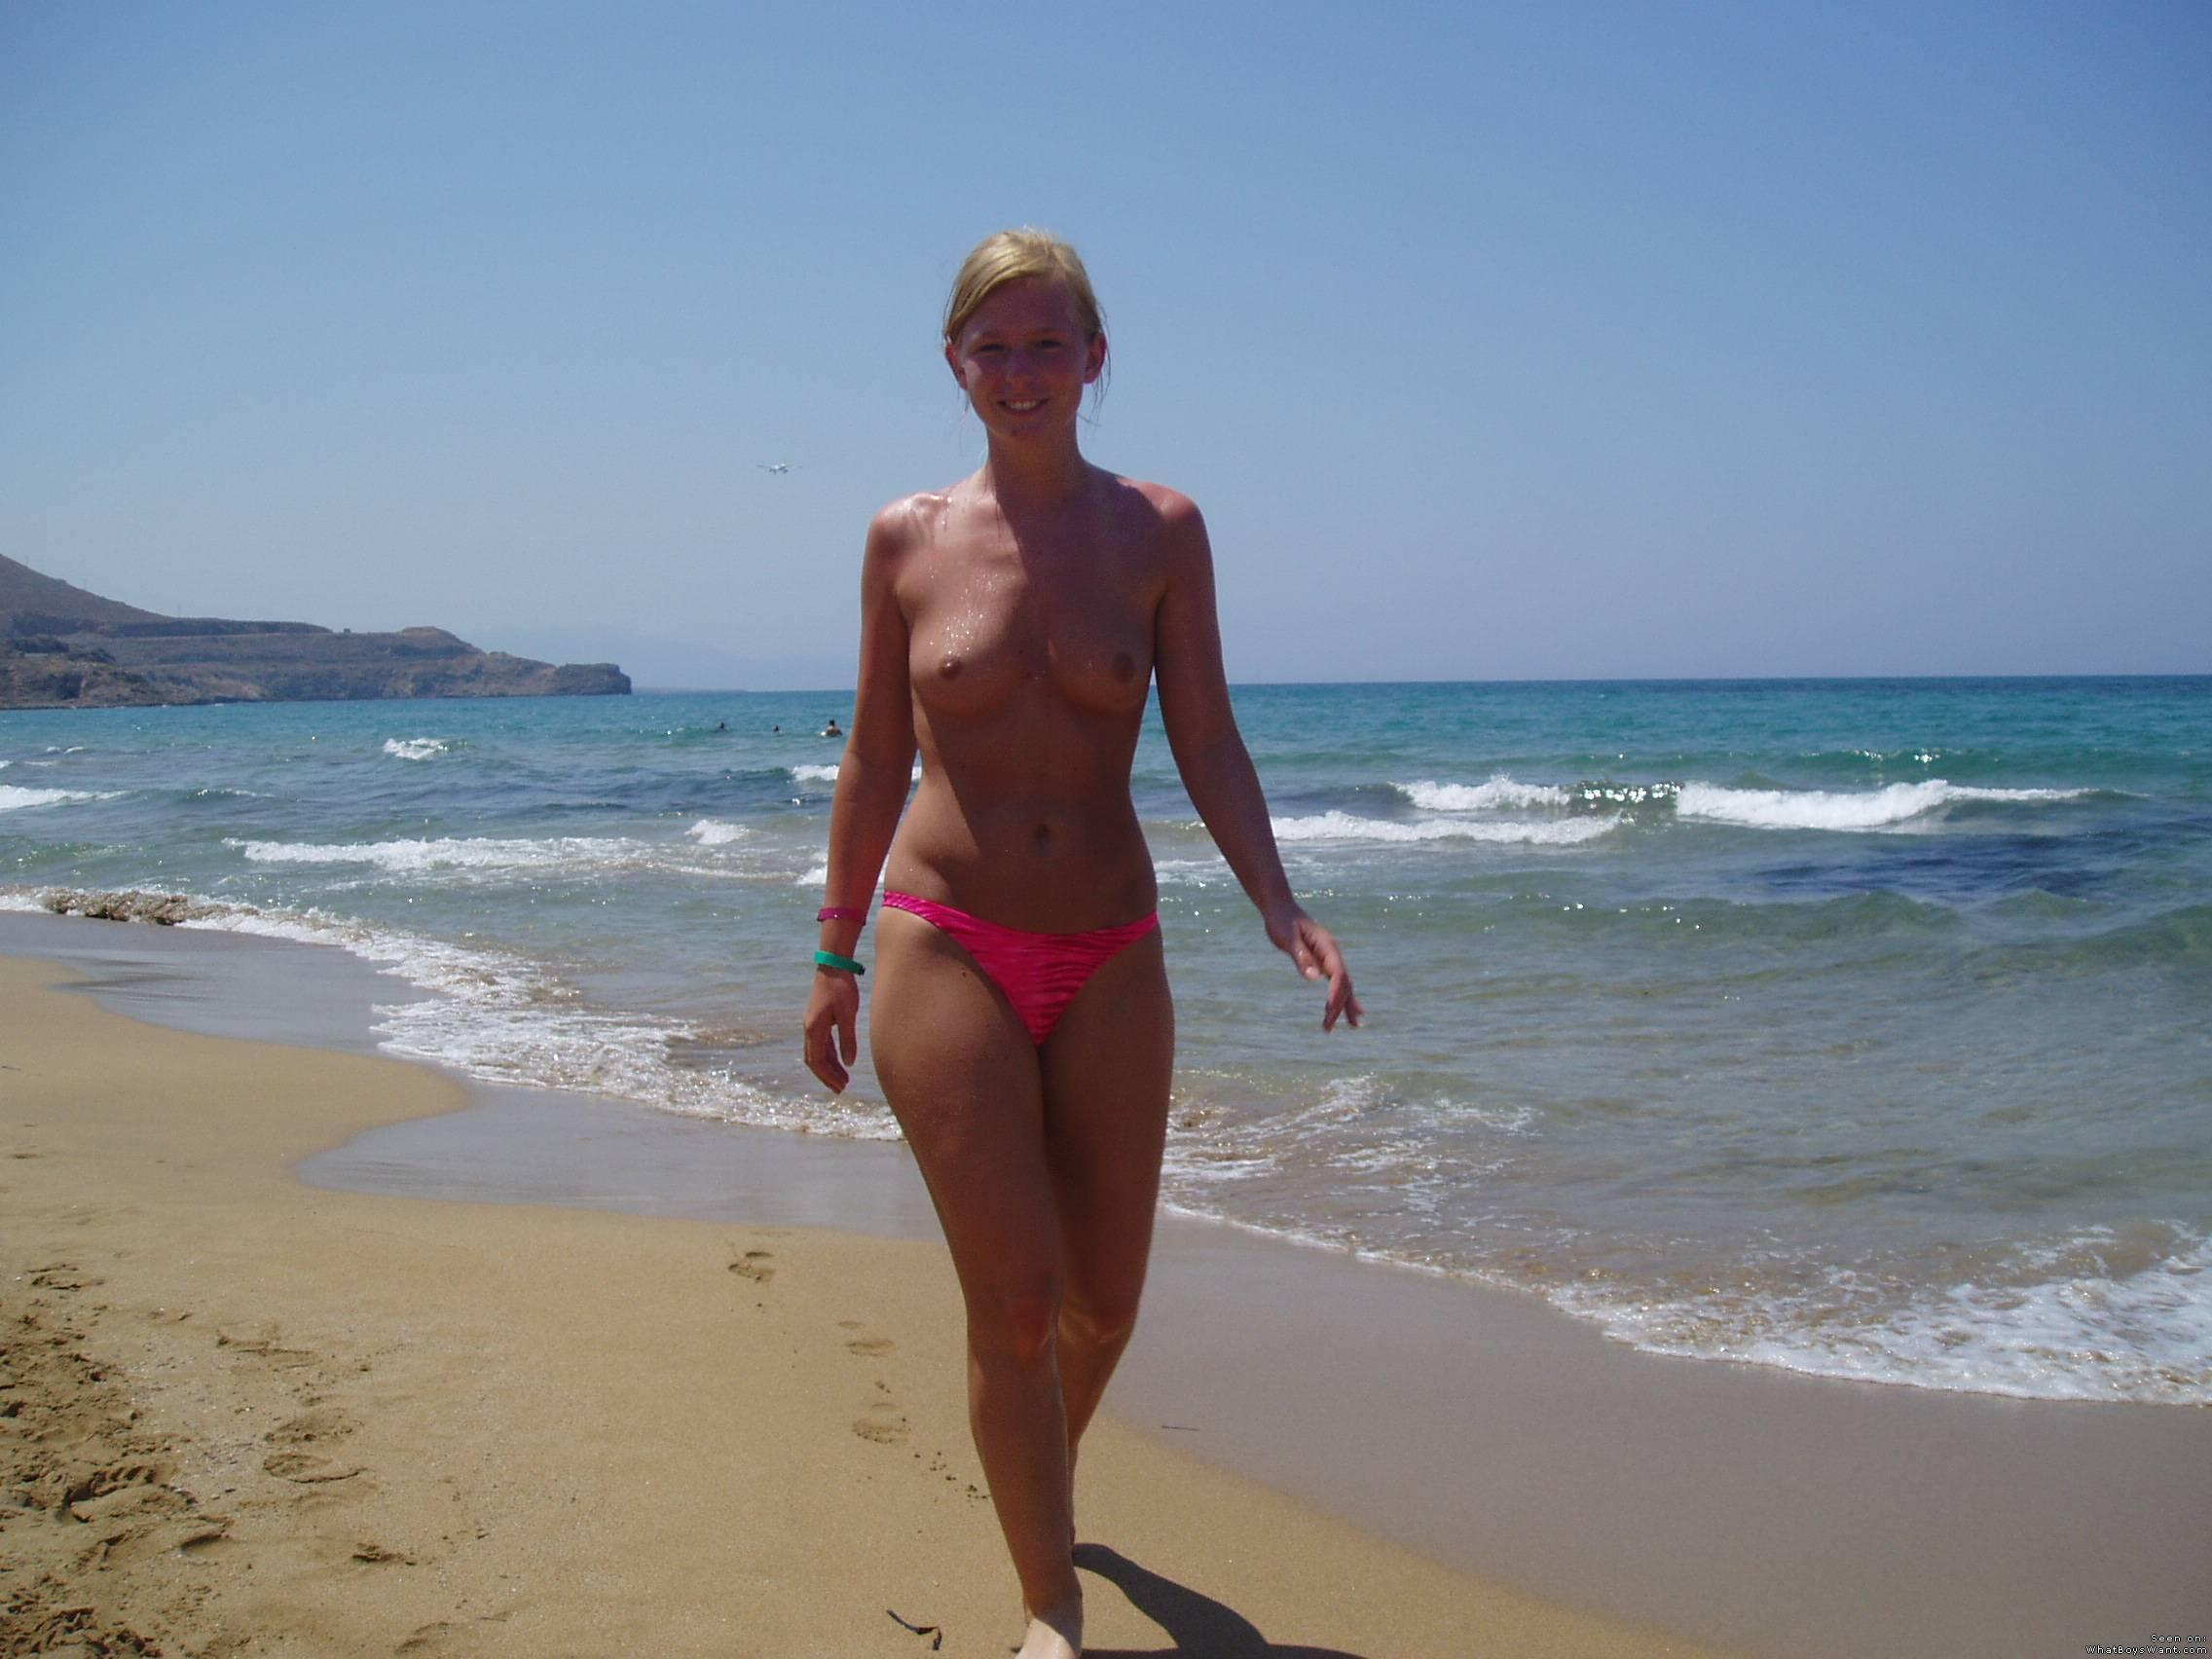 Topless pretty girl walking on the beach in her pink bikinis